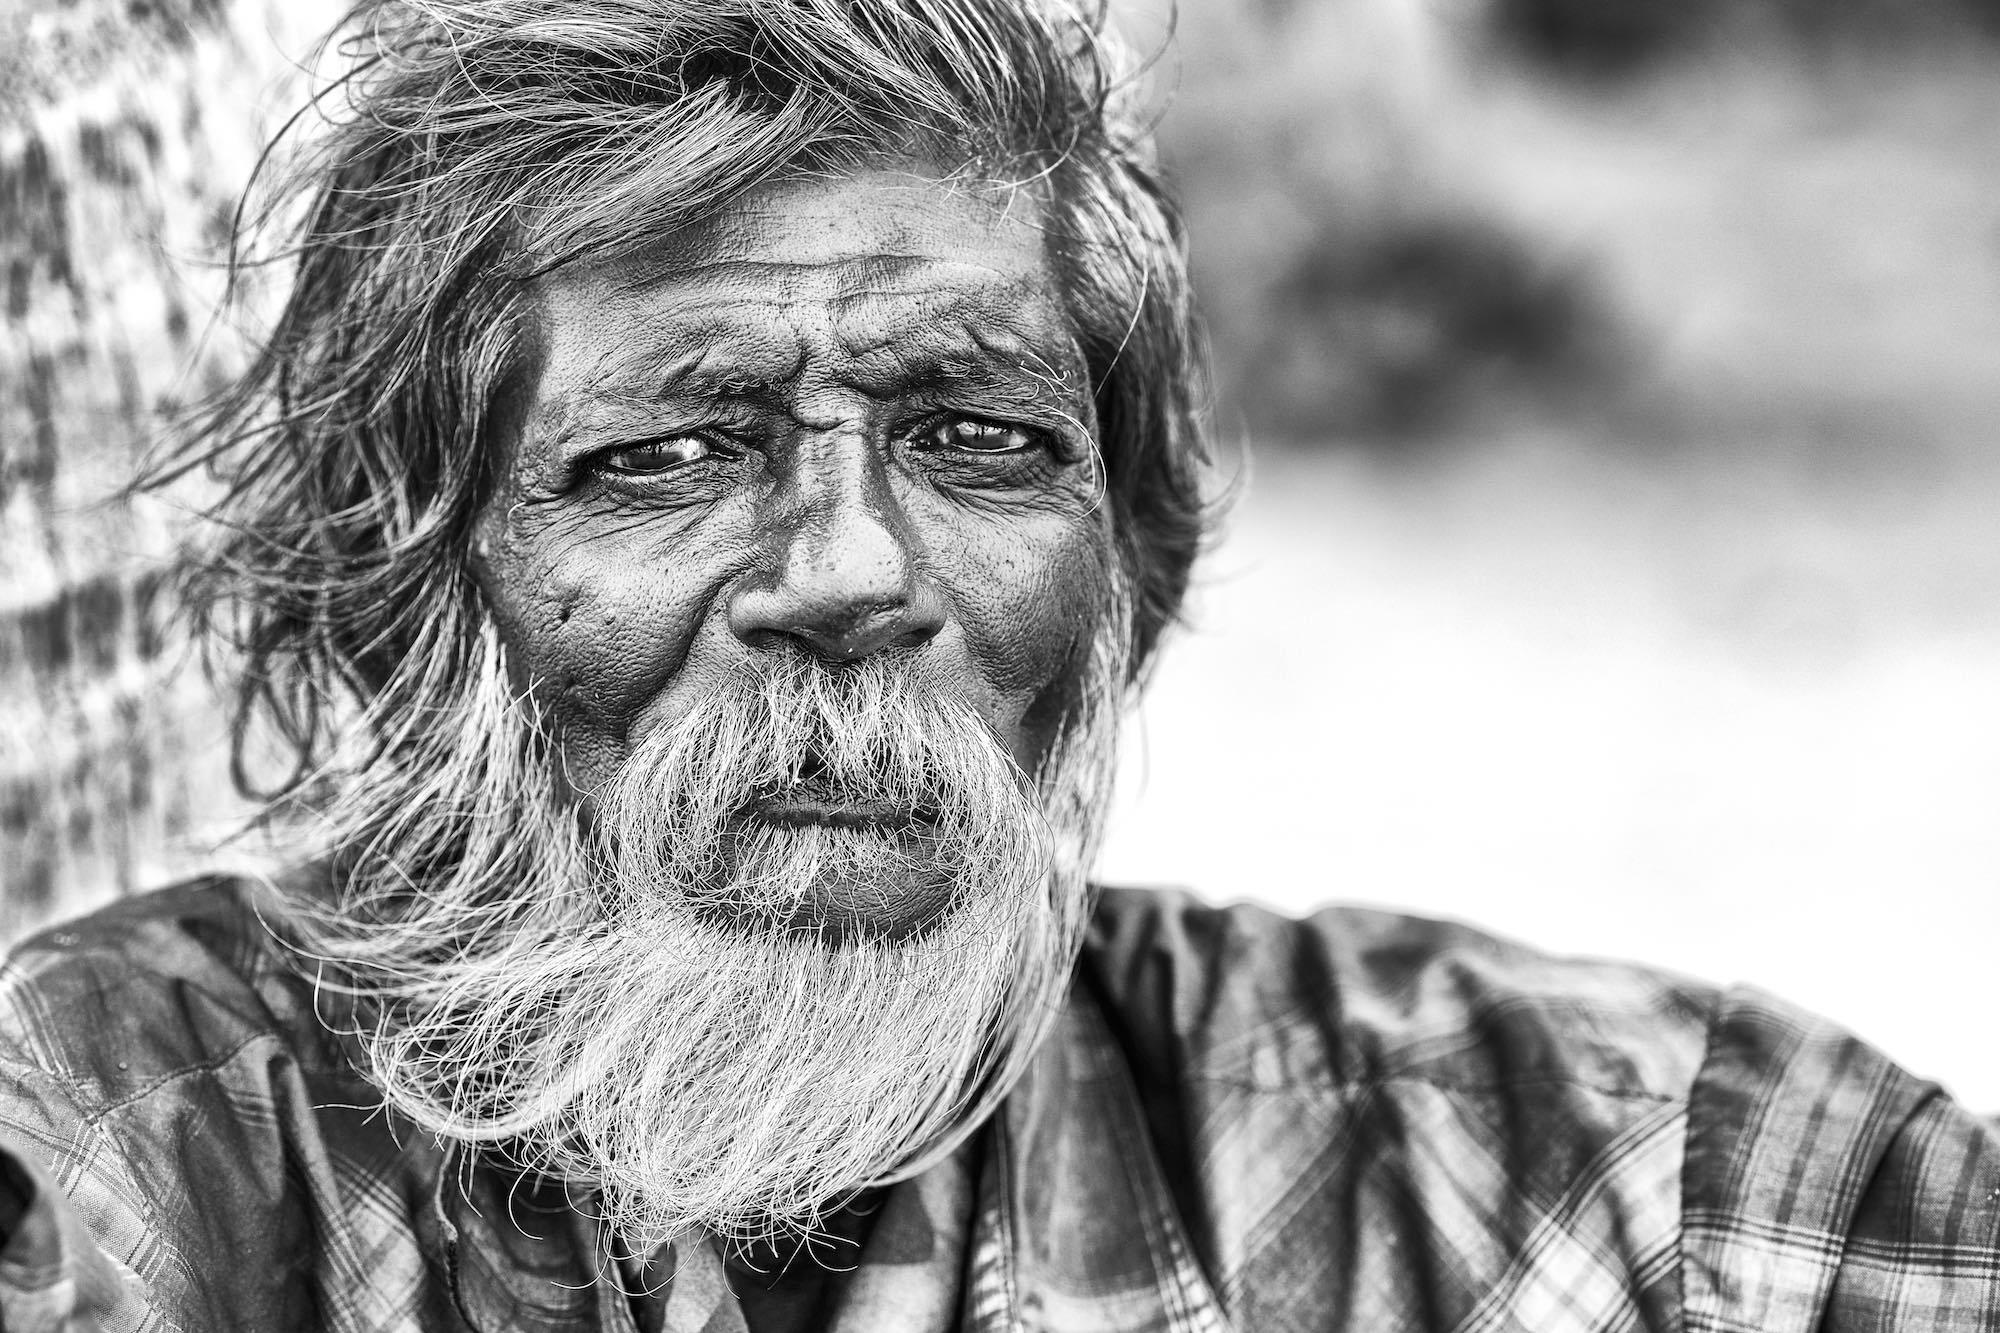 Sri Lanka Negombo beach old black and white 90mm lens man portrait Fujifilm xe3